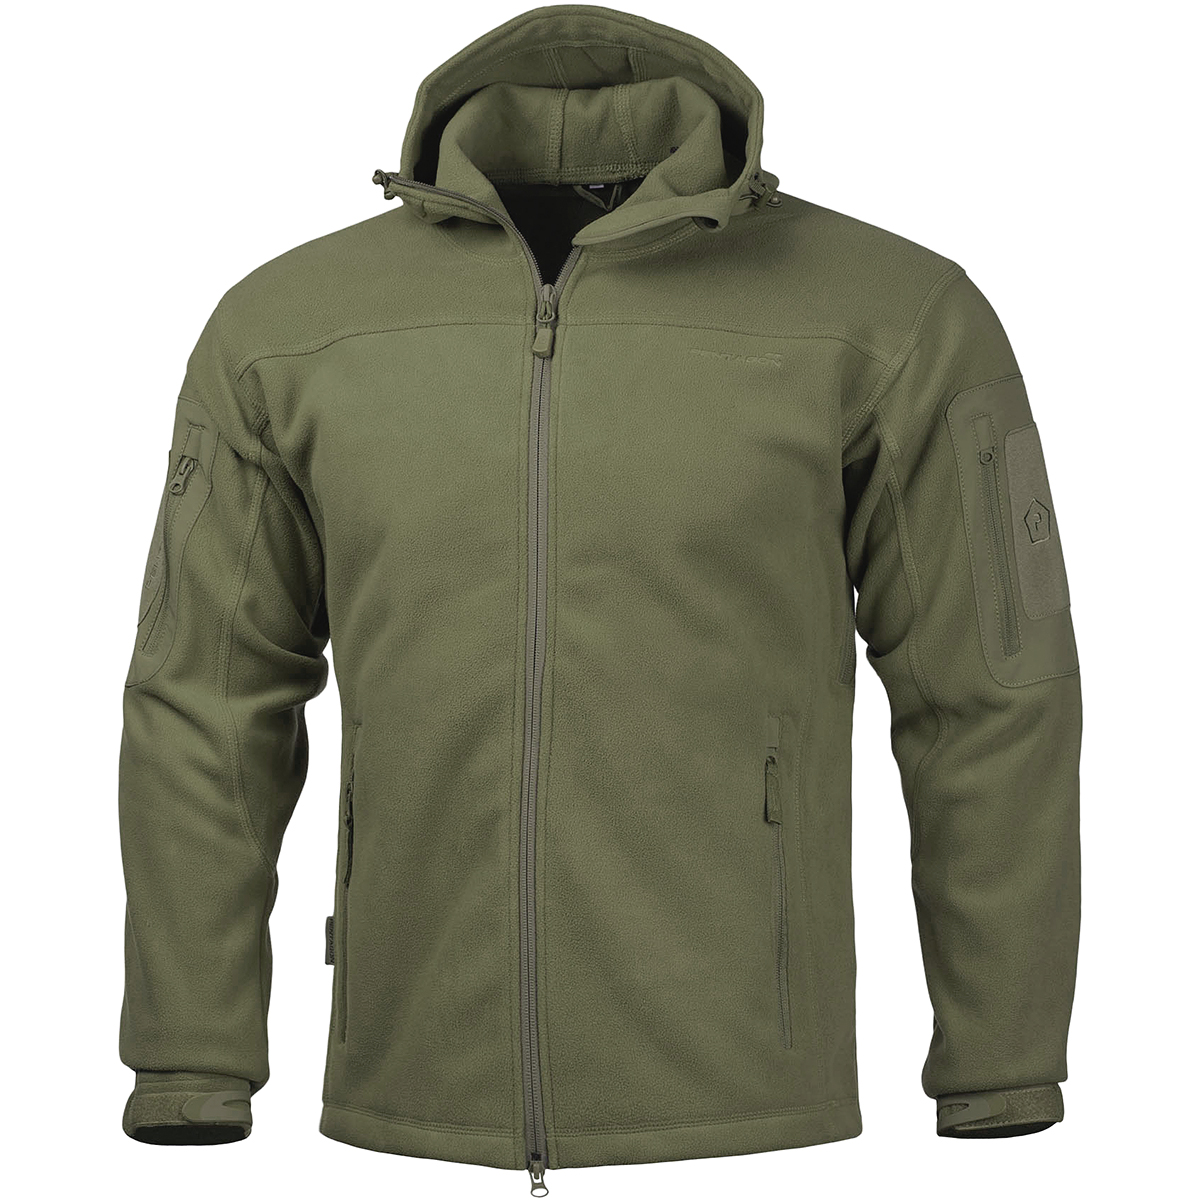 Sport your fleece jacket over a thermal baselayer or under a heavier jacket as a part of a three-layer system. Your fleece jacket is designated as light, mid-layer or heavy. Always consult product information for specifics on the level of warmth your garment provides.